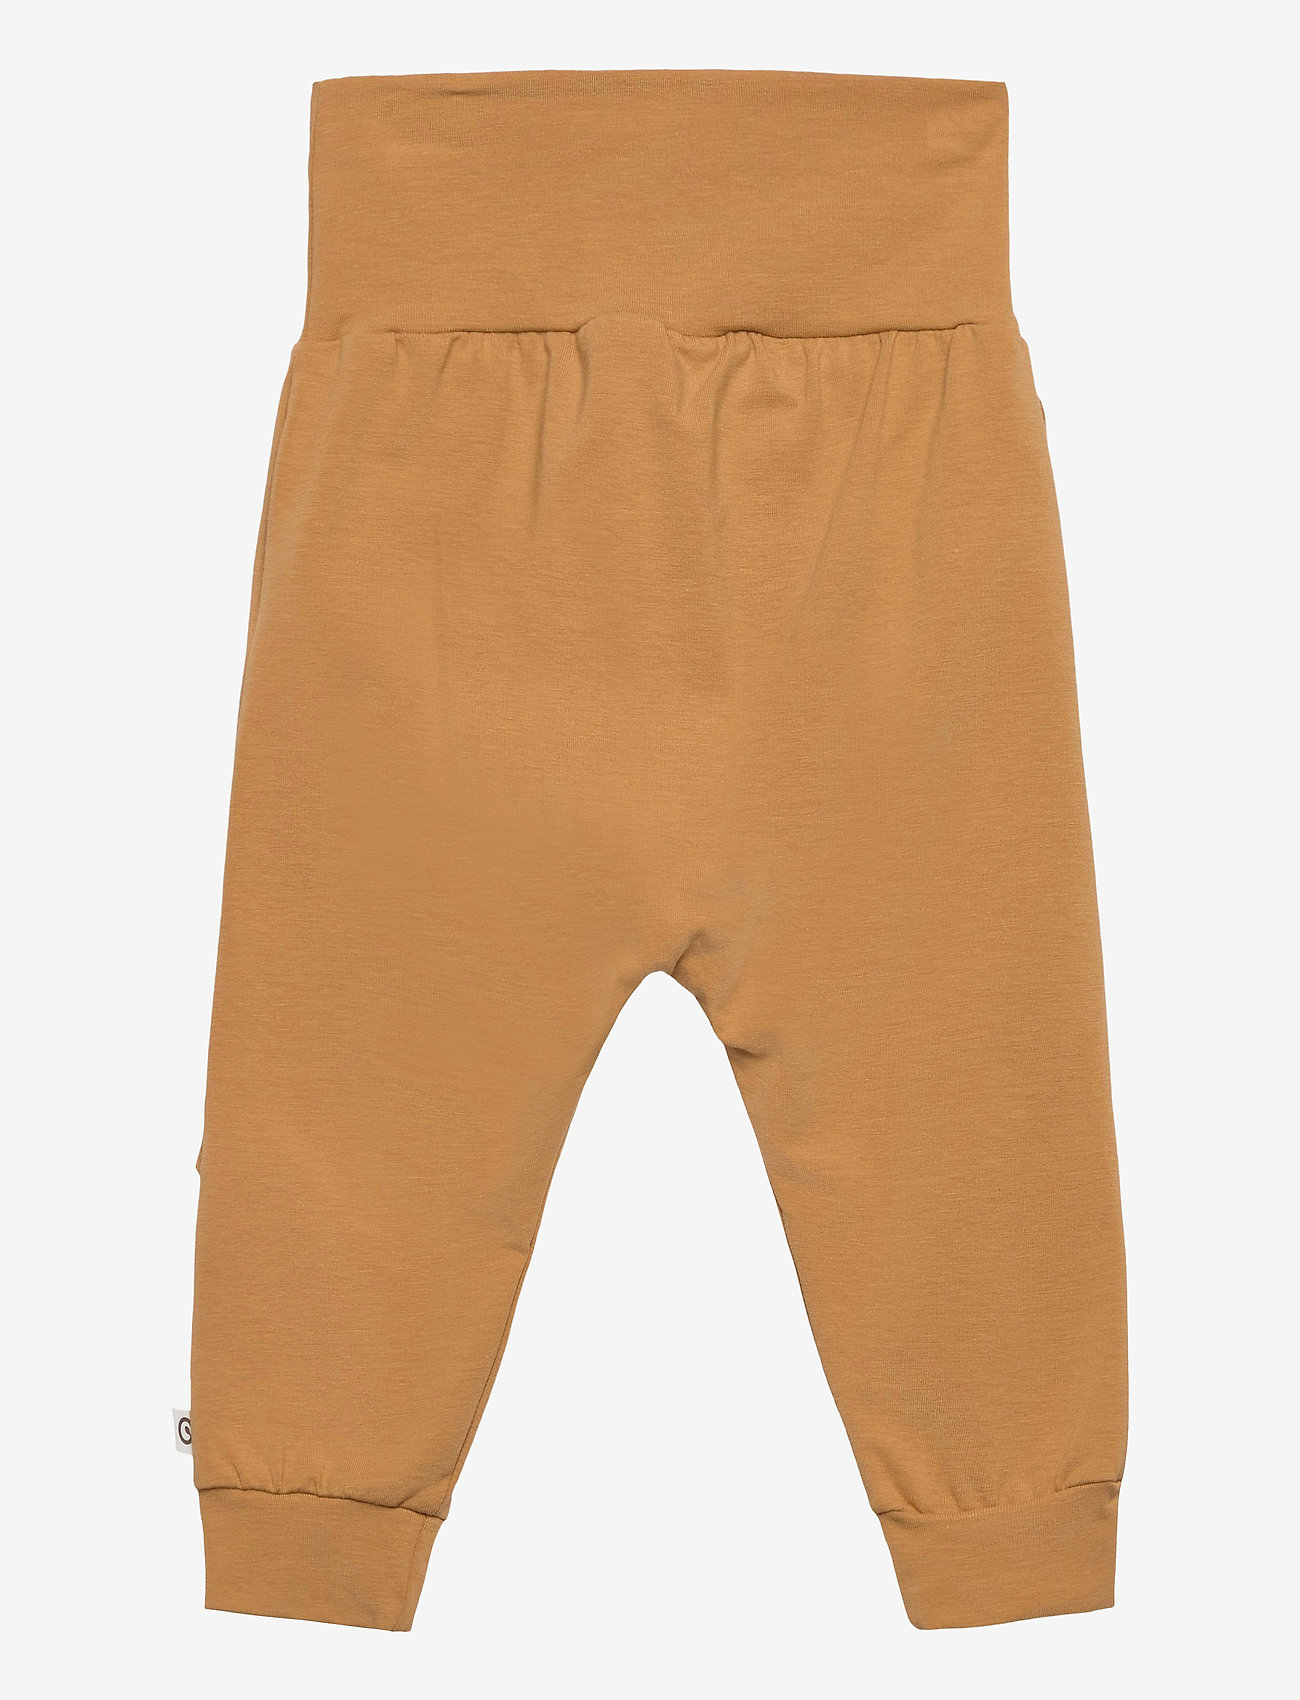 Müsli by Green Cotton - Cozy me frill pants - trousers - toffee - 1